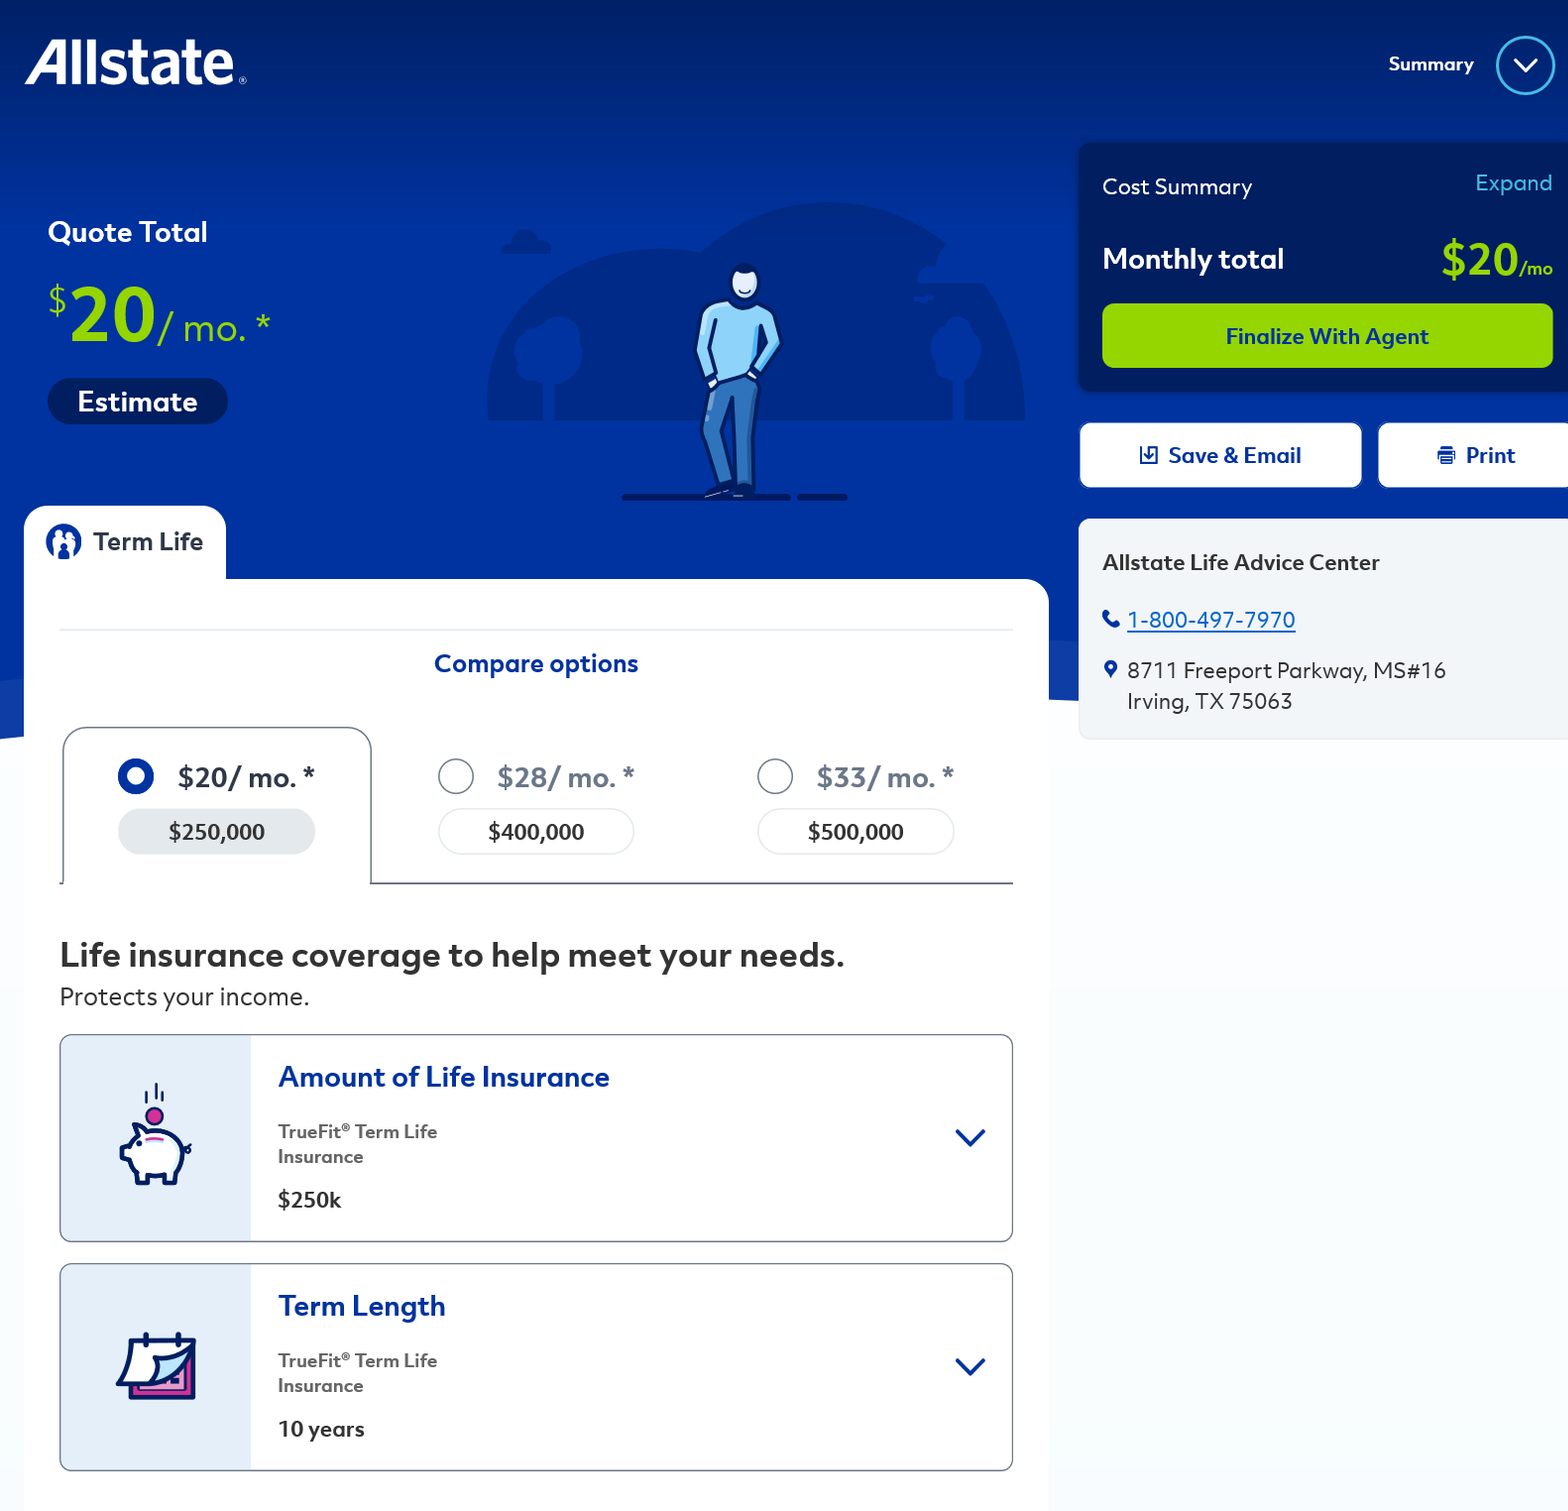 Allstate Get a Quote Results